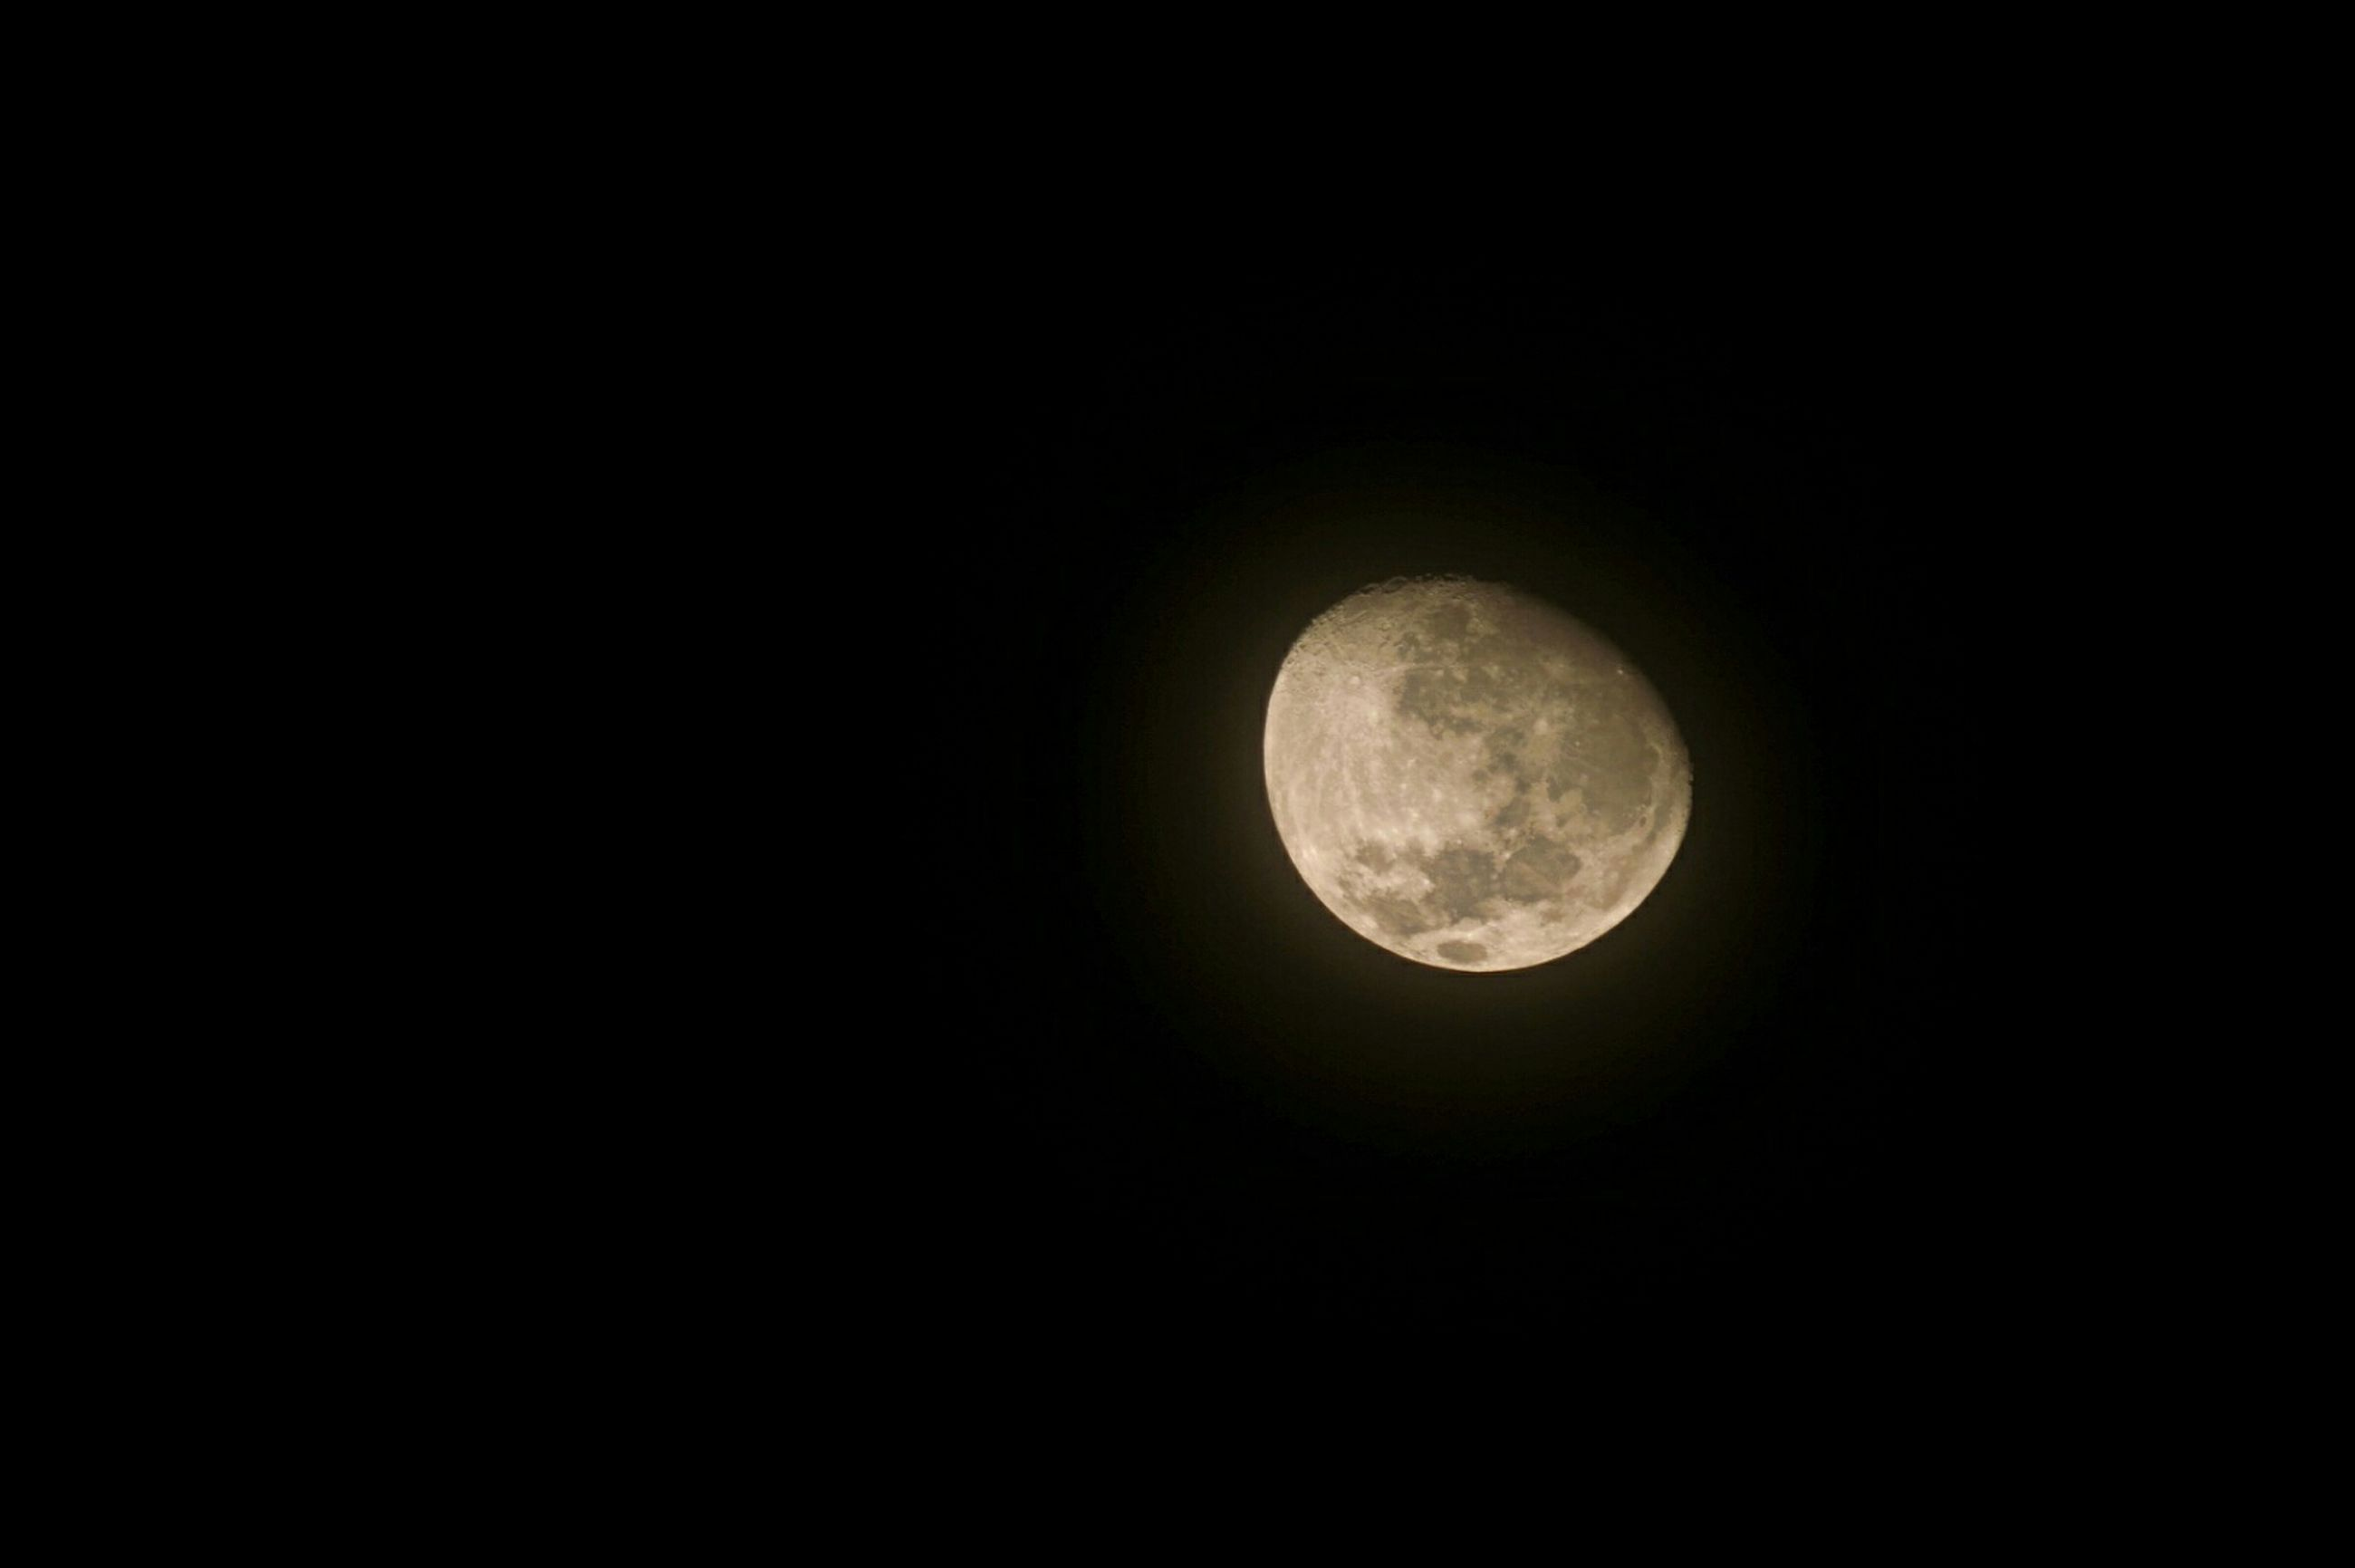 moon, astronomy, circle, night, full moon, planetary moon, beauty in nature, copy space, scenics, dark, tranquil scene, tranquility, low angle view, moon surface, nature, sky, majestic, space exploration, clear sky, idyllic